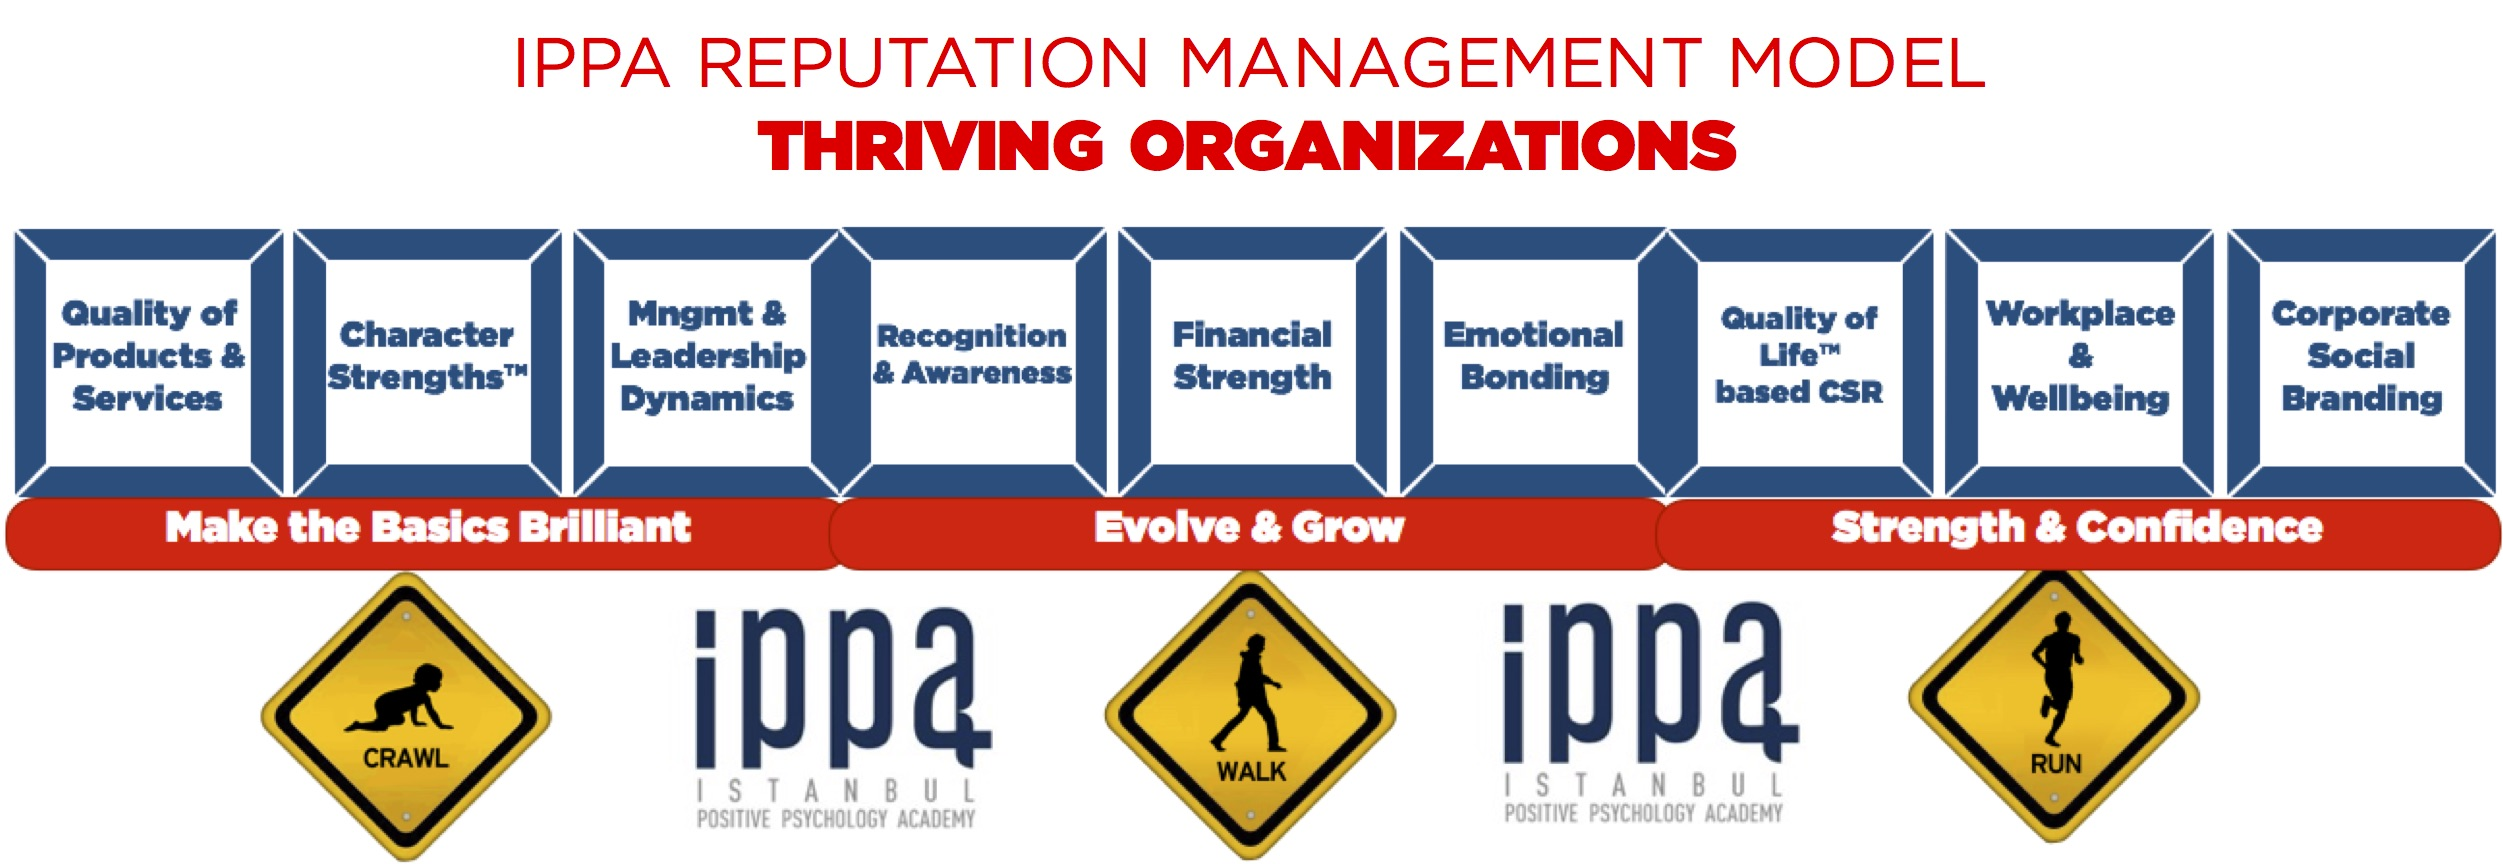 IPPA REPUTATION MANAGEMENT MODEL